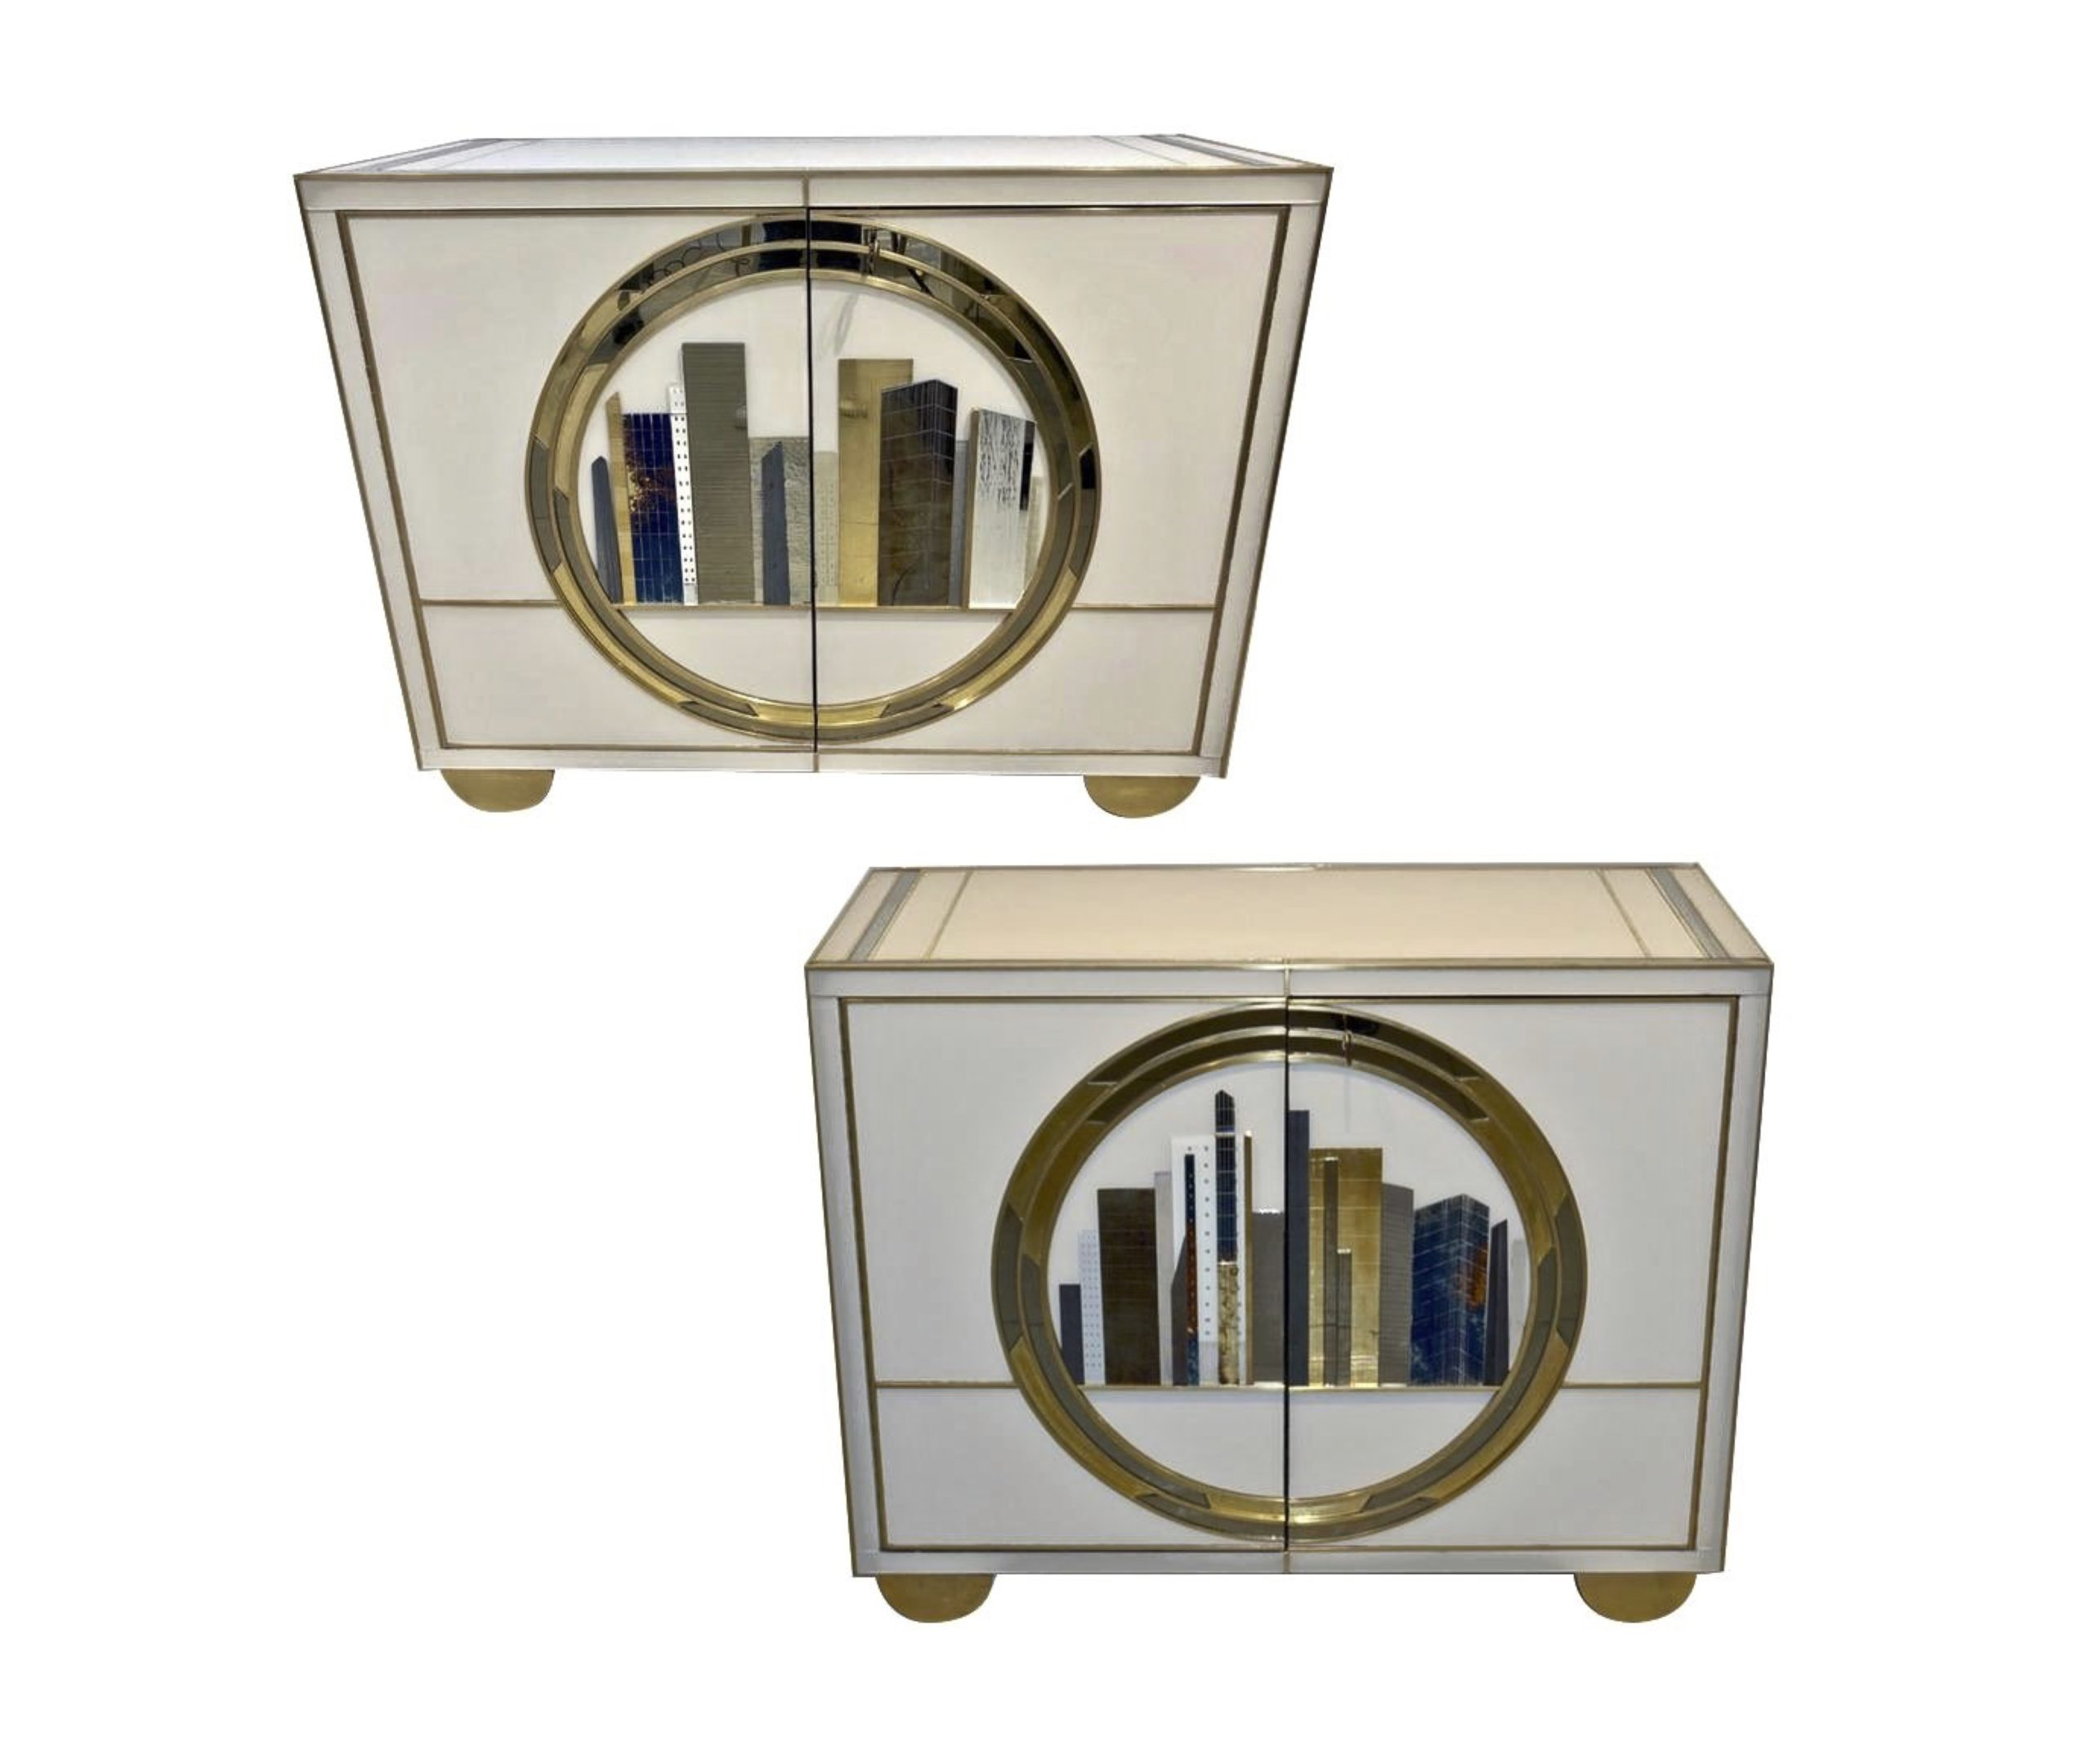 cosulich_interiors_and_antiques_products_new_york_design_italian_contemporary_bespoke_ivory_cabinets_with_new_york_blue_gold_skyline_2-scaled-1